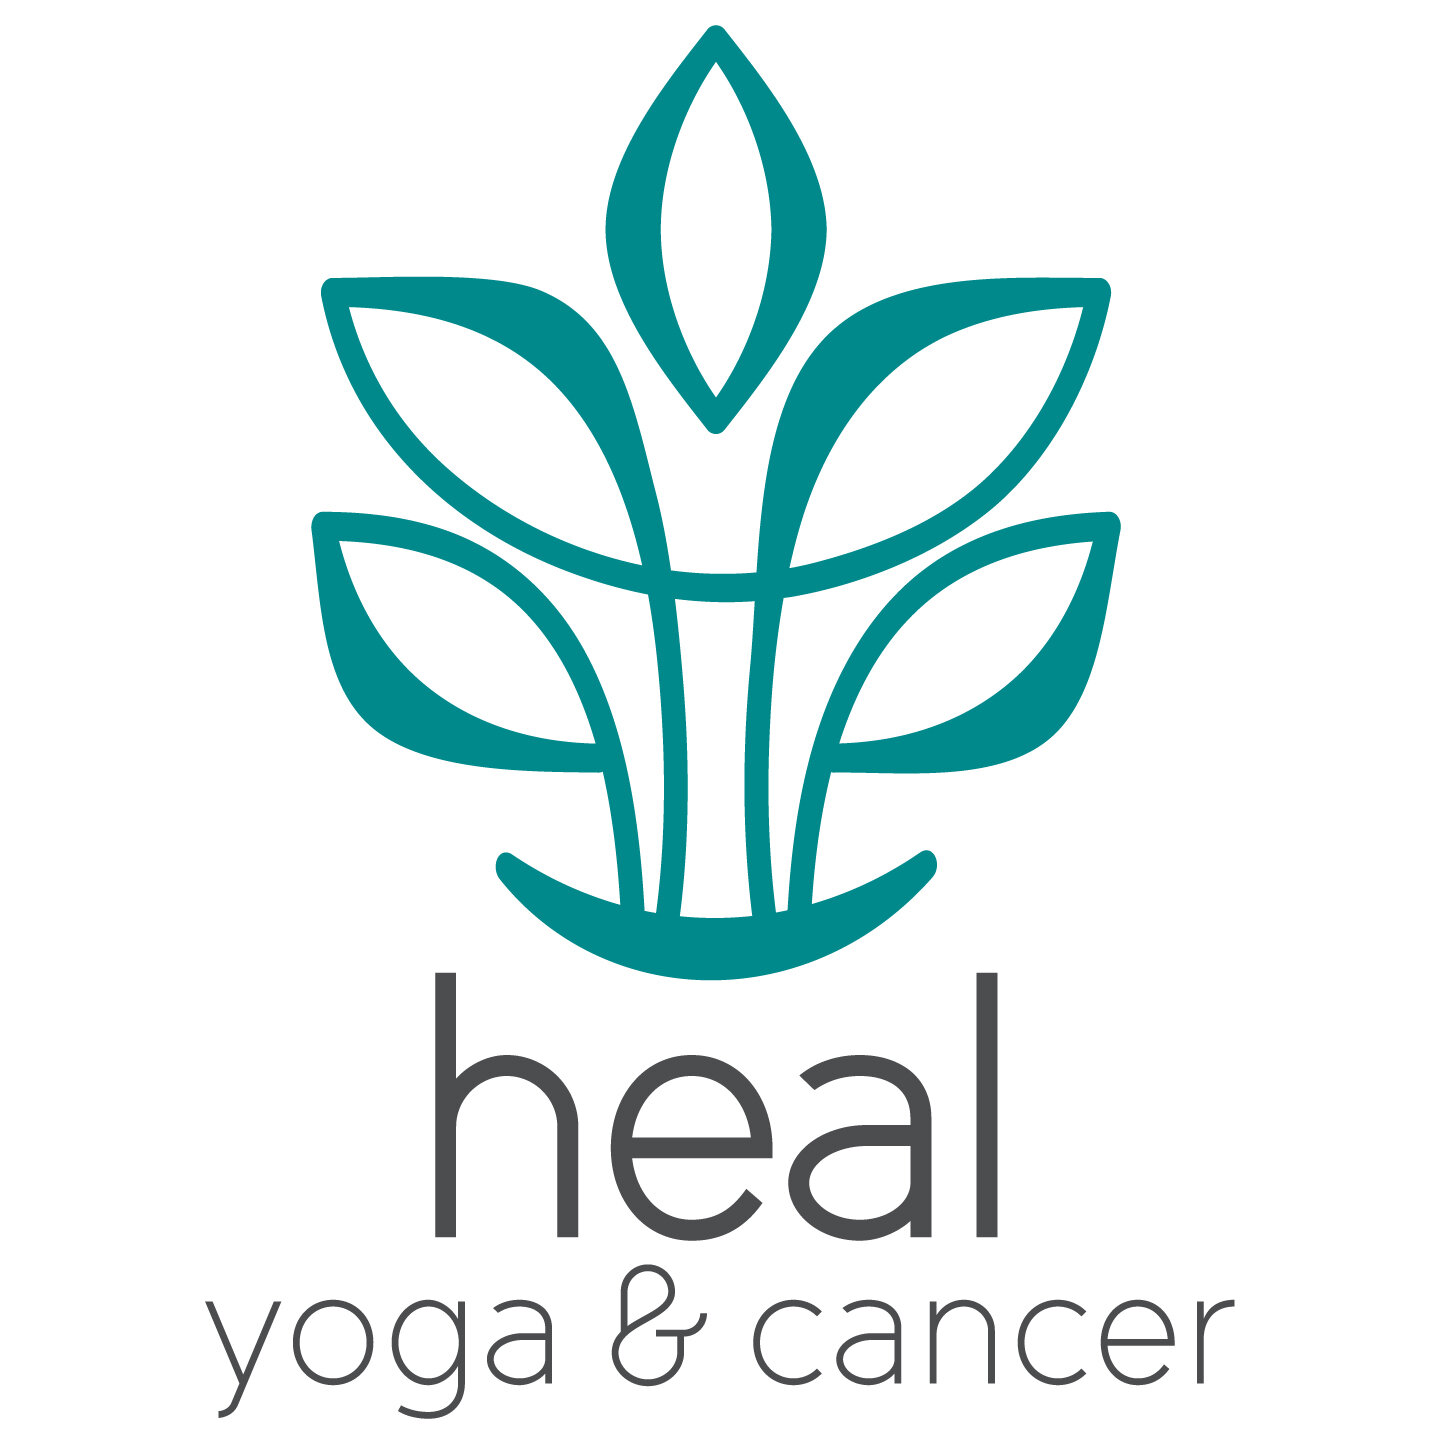 Yoga and Cancer